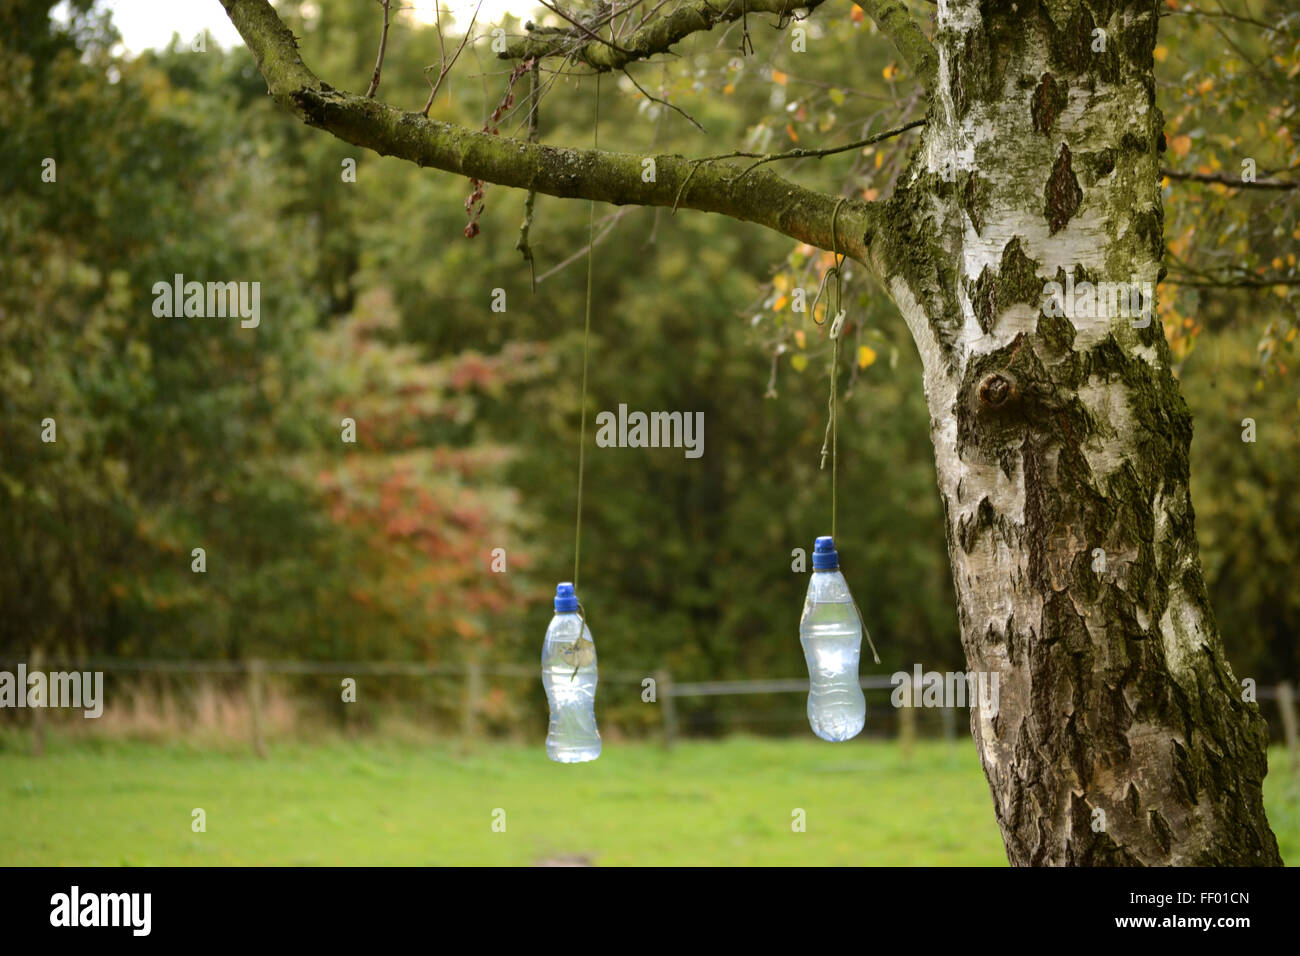 tree in pasture in Limburg with water bottles hanging from lowest branch - Stock Image